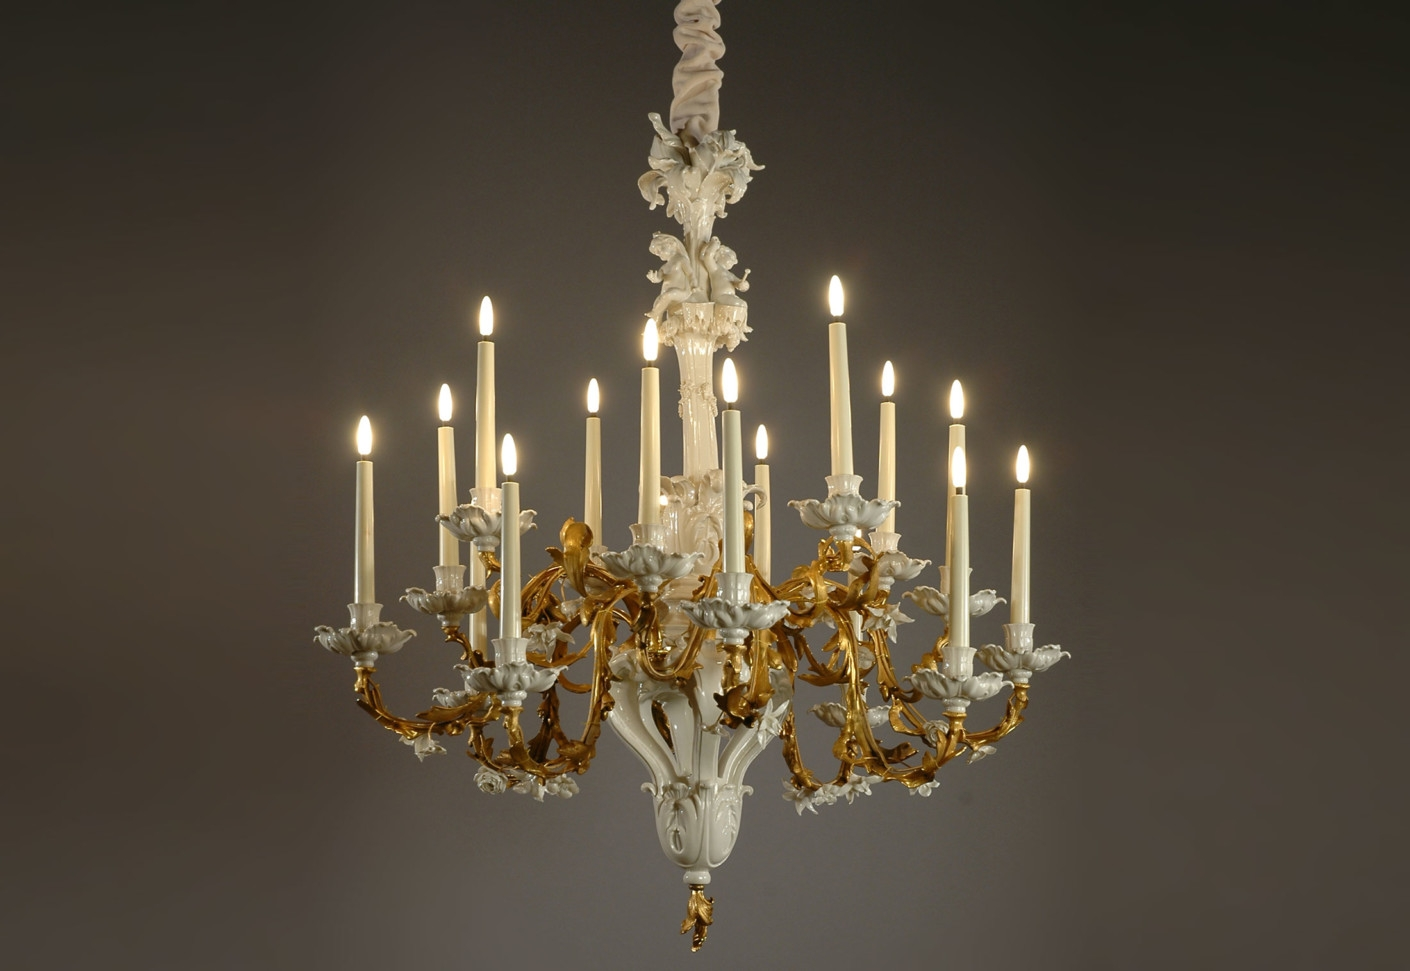 Popular Photo of Baroque Chandelier